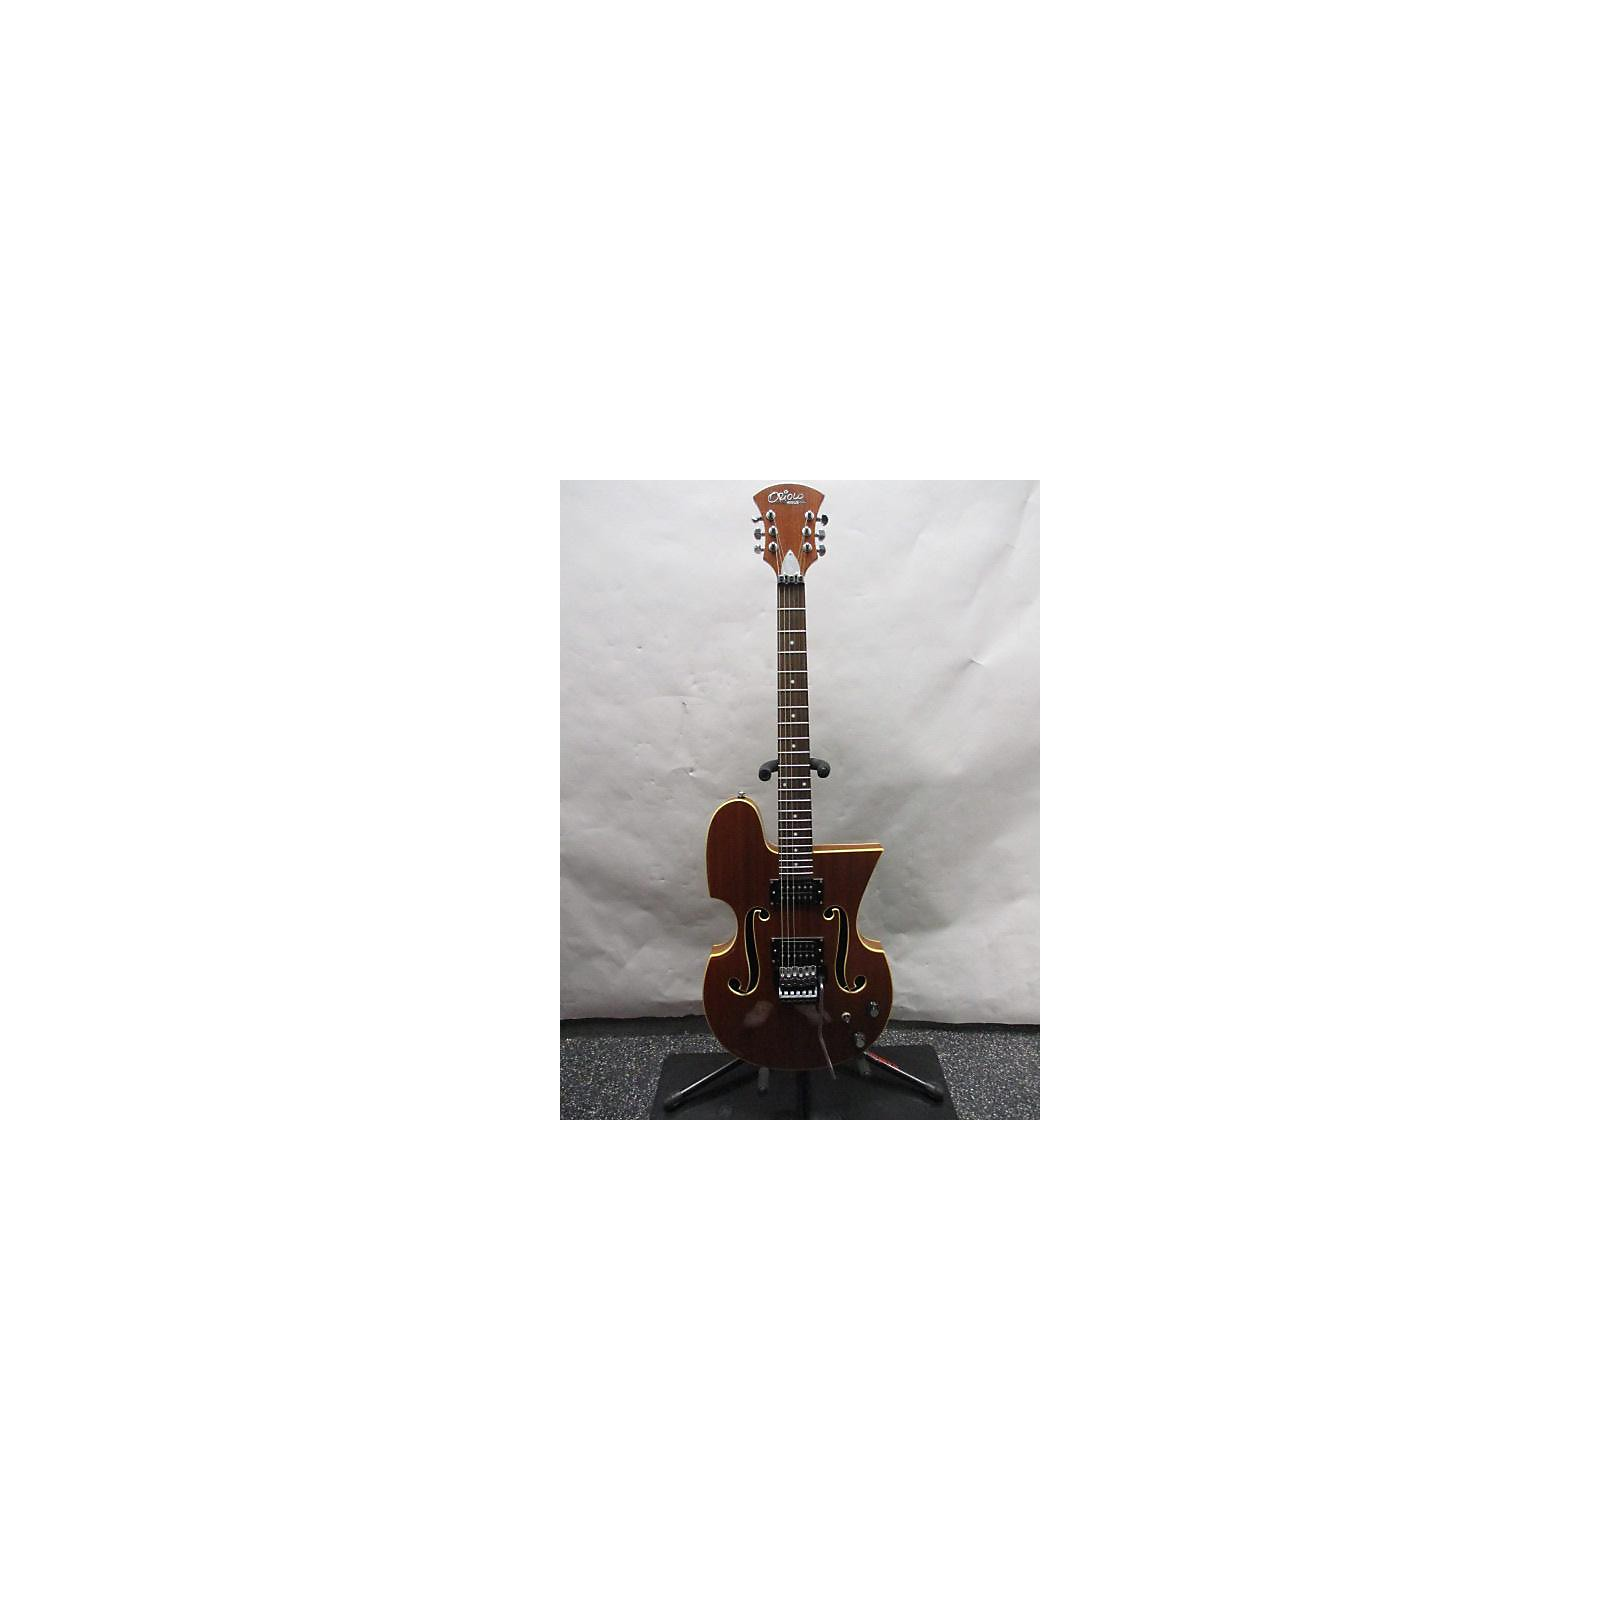 In Store Used Used Oriolo ME-10-6 Brown Hollow Body Electric Guitar